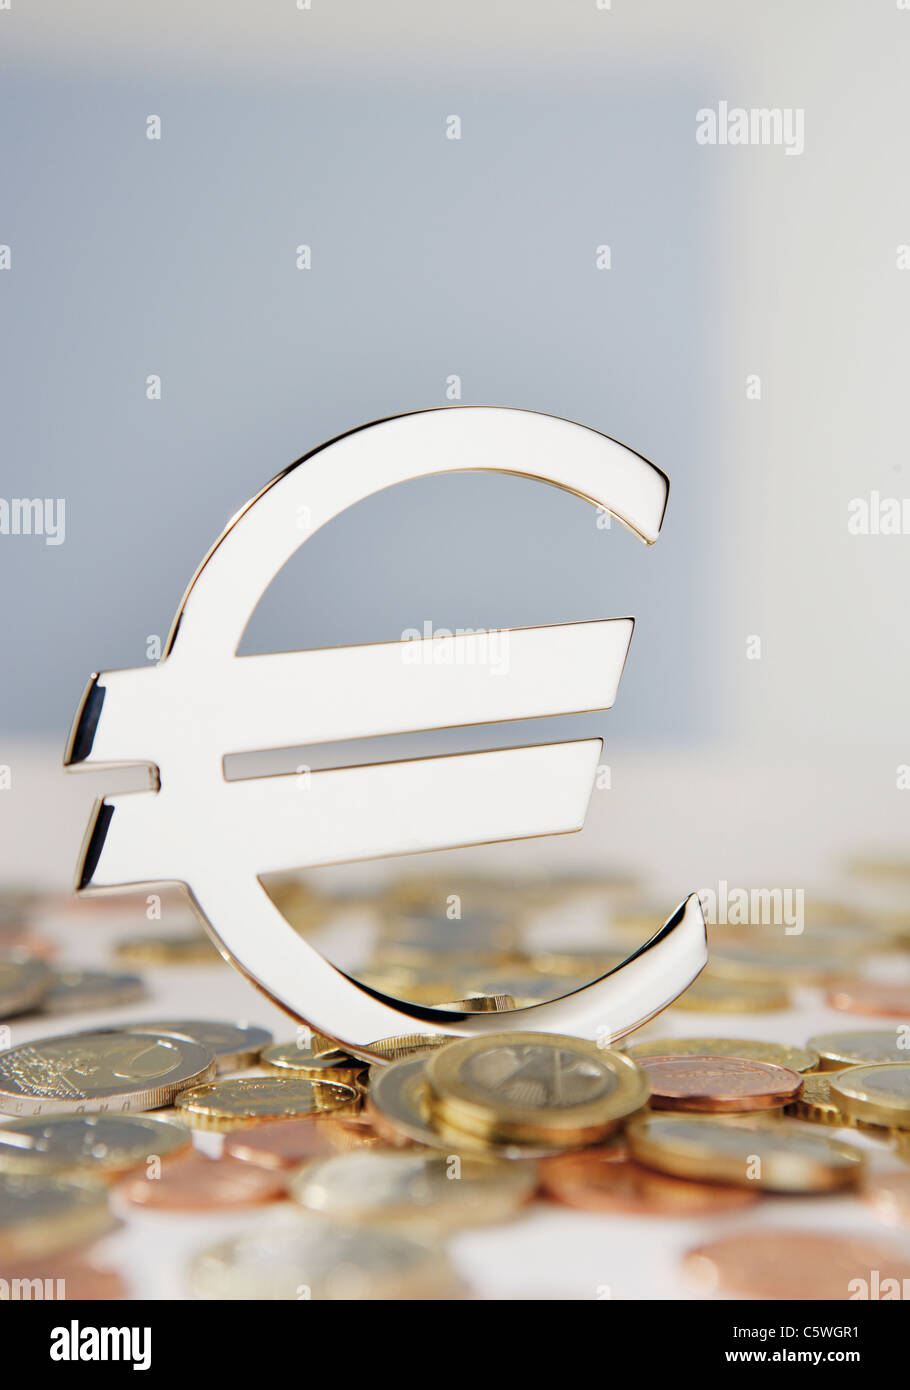 Close up of euro sign with euro coins - Stock Image